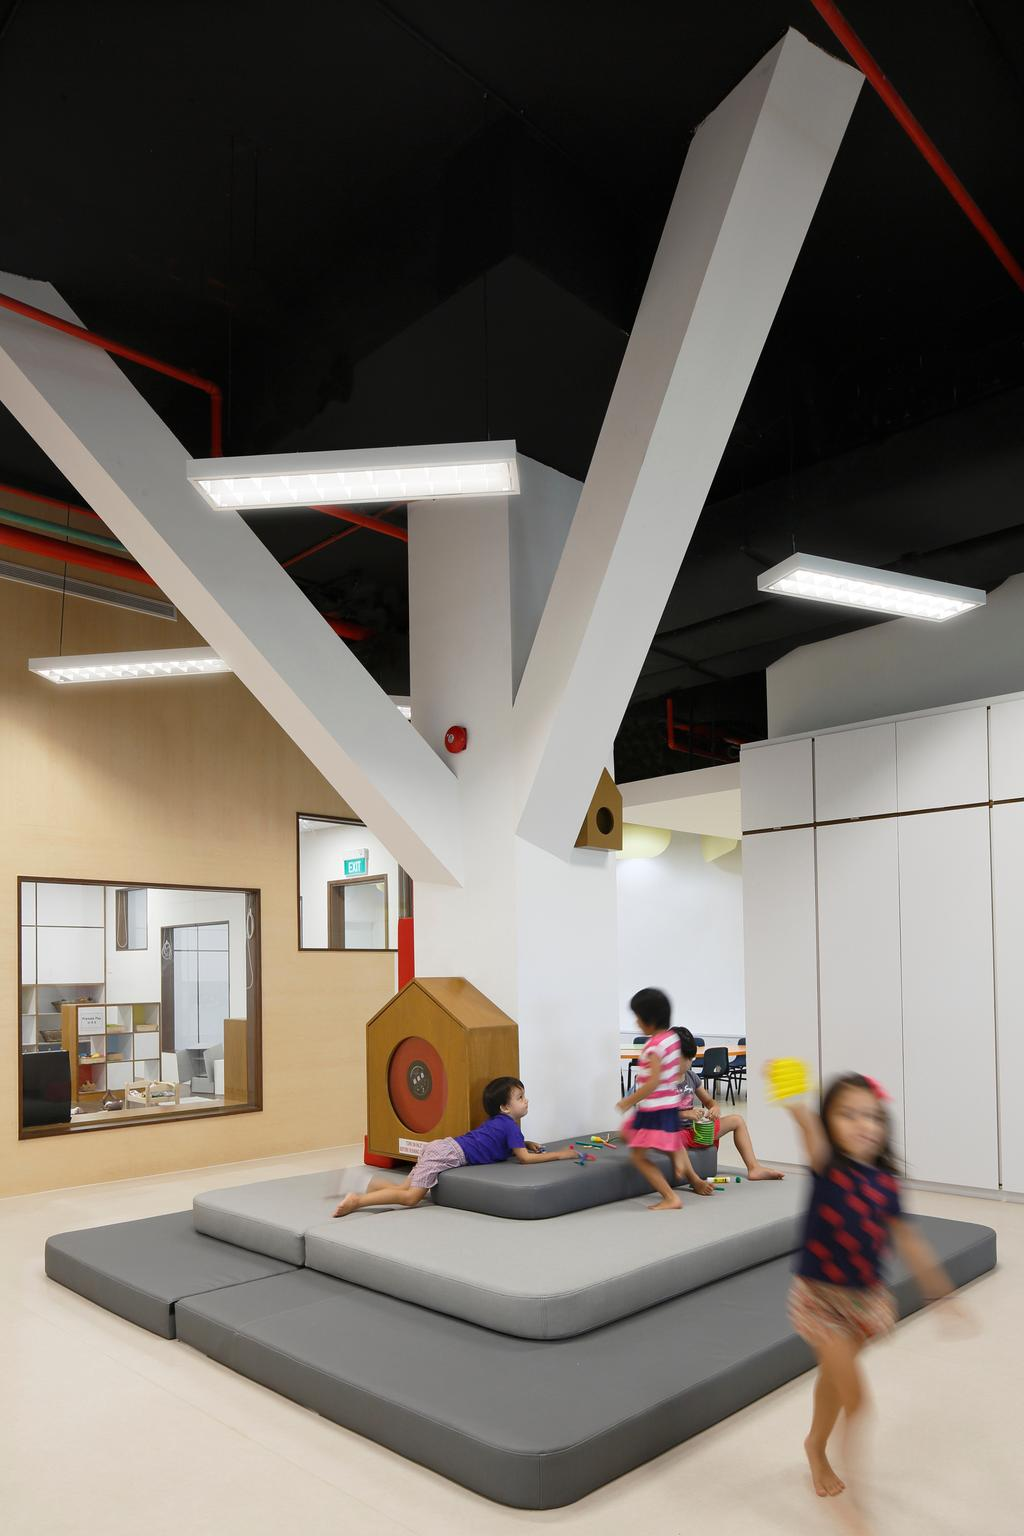 Cove 2 Preschool, Commercial, Architect, Lekker Architects, Contemporary, Hanging Ceiling Lights, Ceiling Lights, White Floor, White Cupboard, Grey Floor Mat, Thick Floor Mat, Gray Floor Mat, White Pillar, Human, People, Person, White Board, Door, Sliding Door